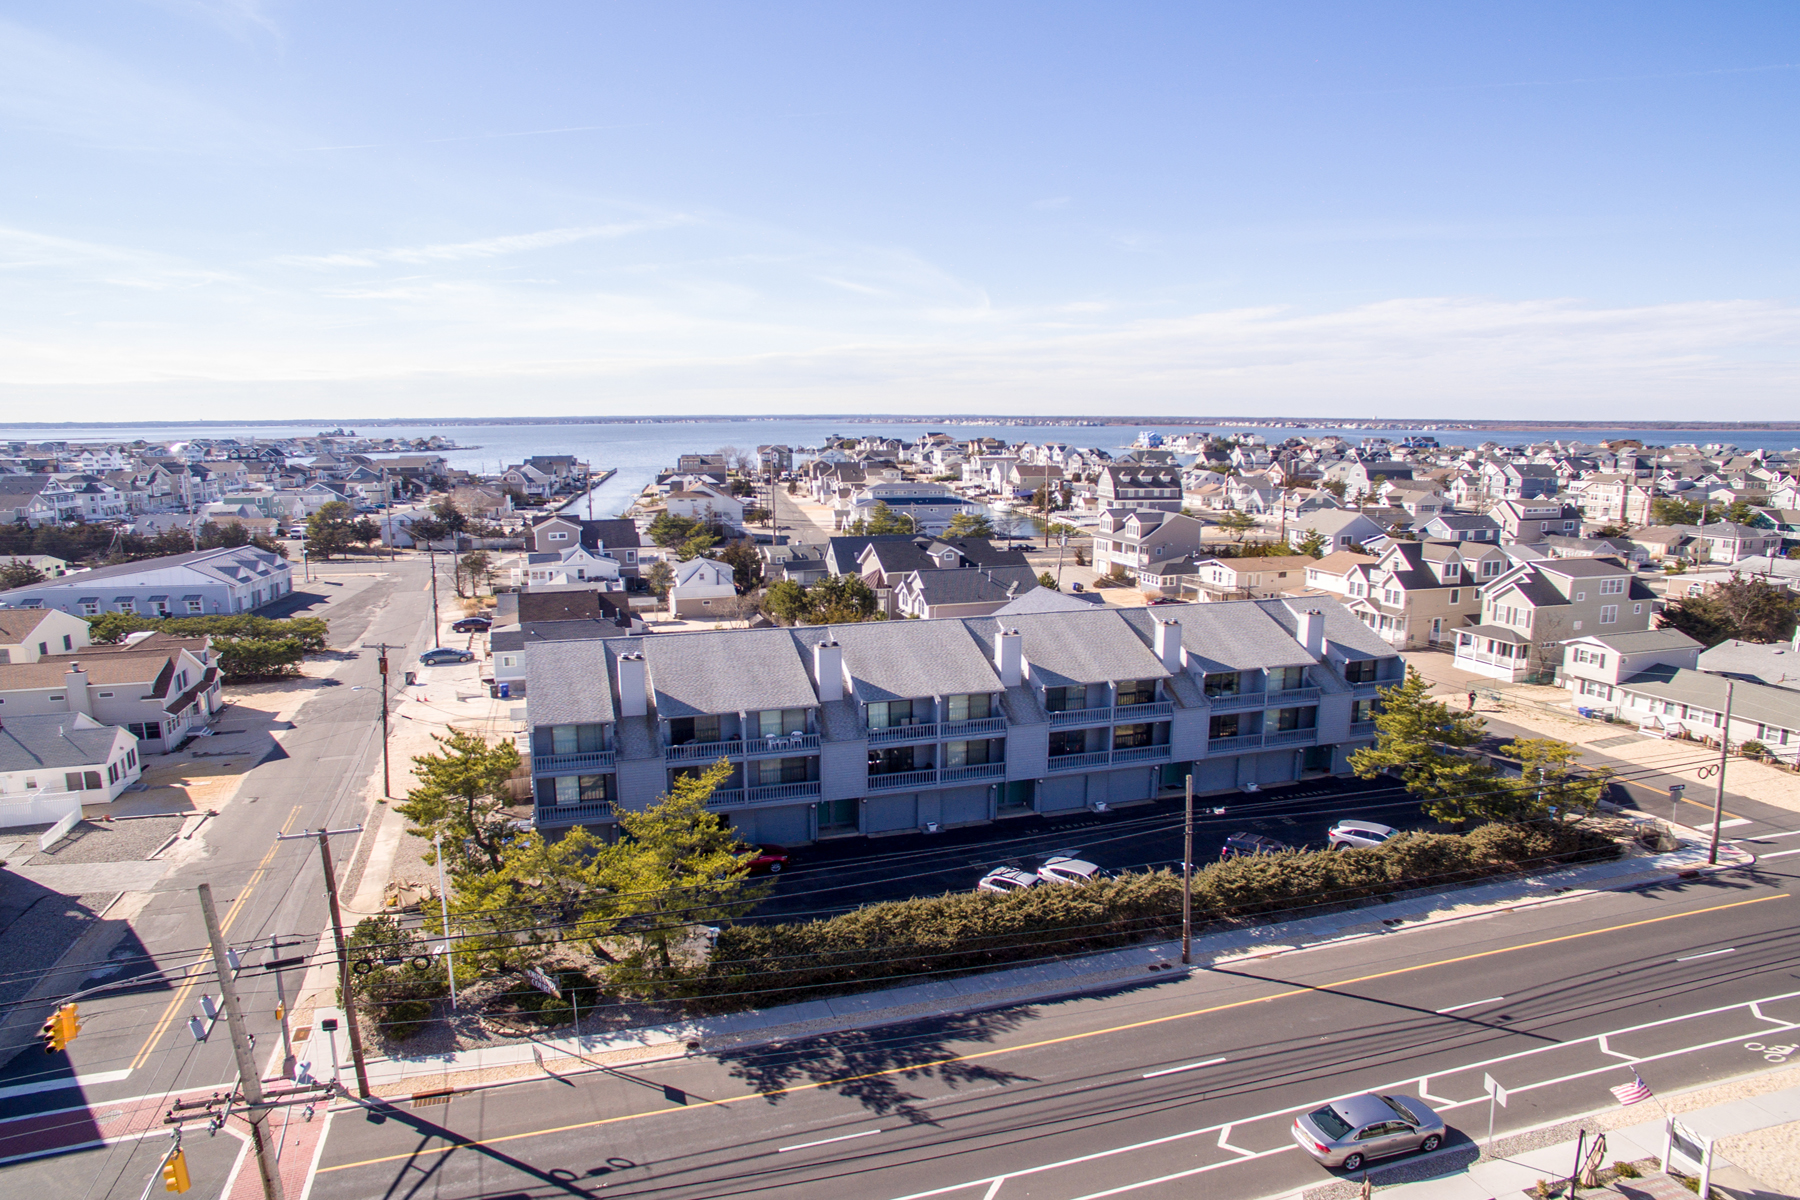 Townhouse for Sale at Large Townhouse Only One Block To The Beach! 3629-7 N Route 35, Lavallette, New Jersey 08735 United States